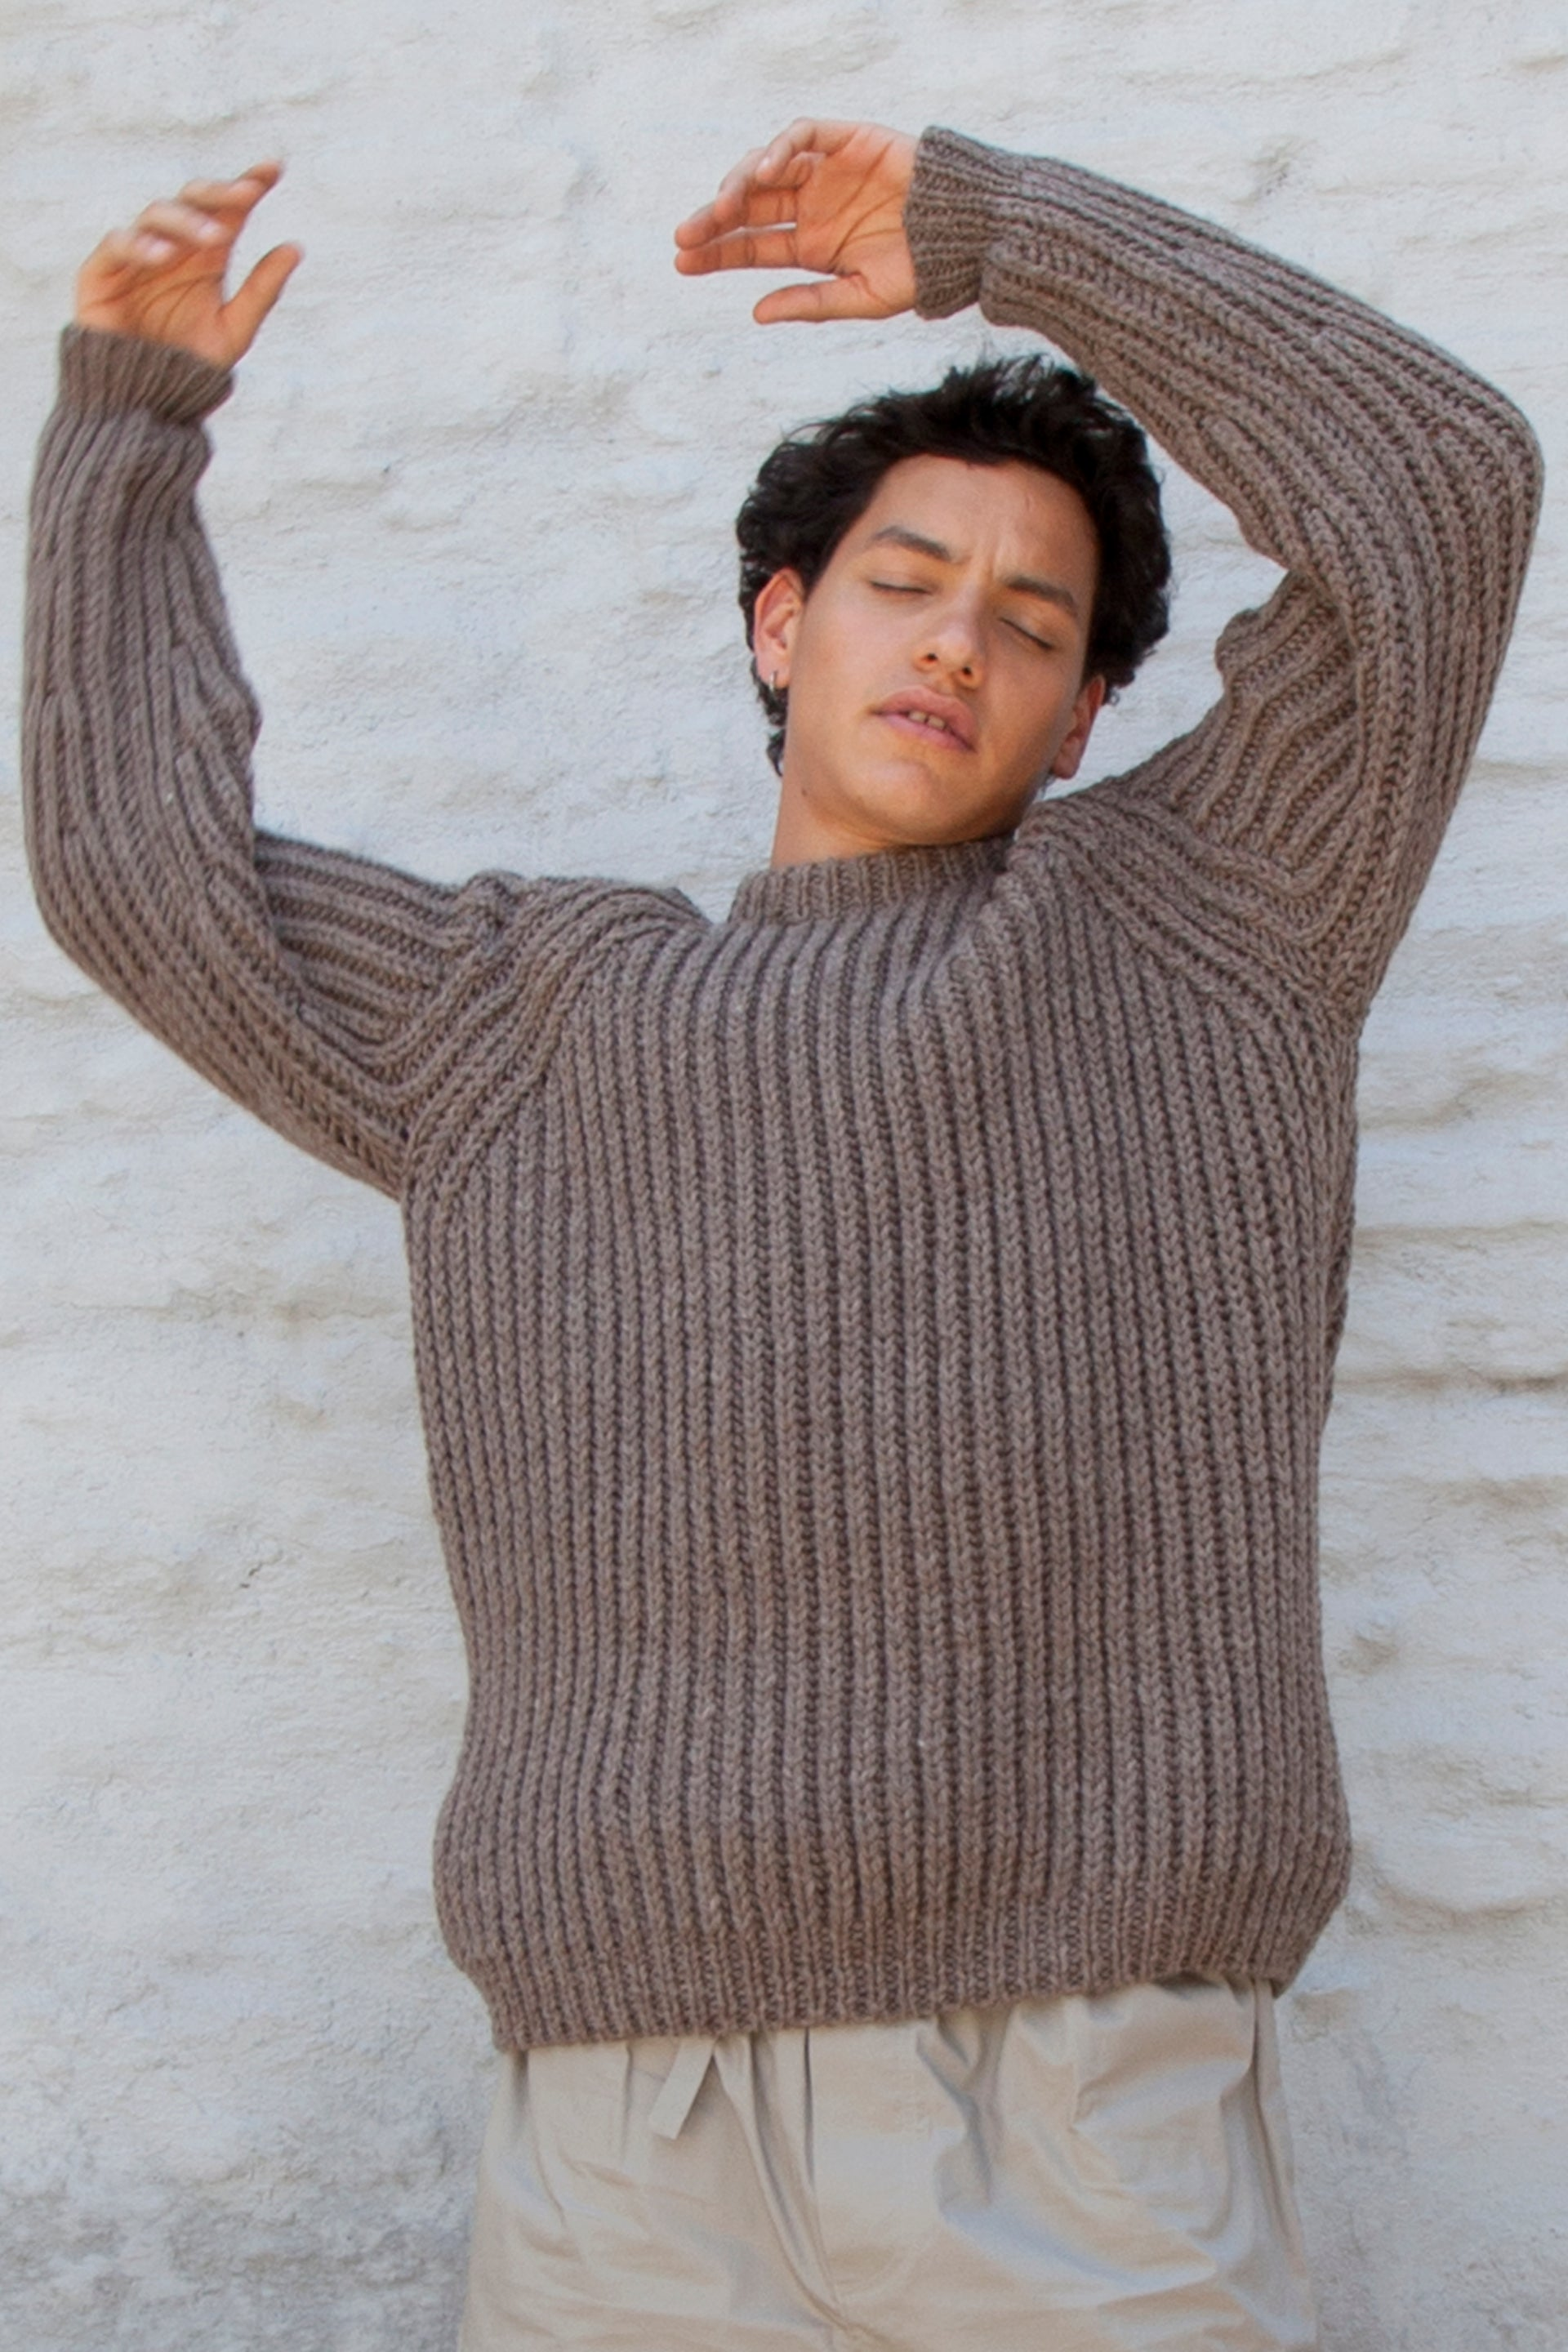 HAND KNITTED YABO WOOL JUMPER - CUB